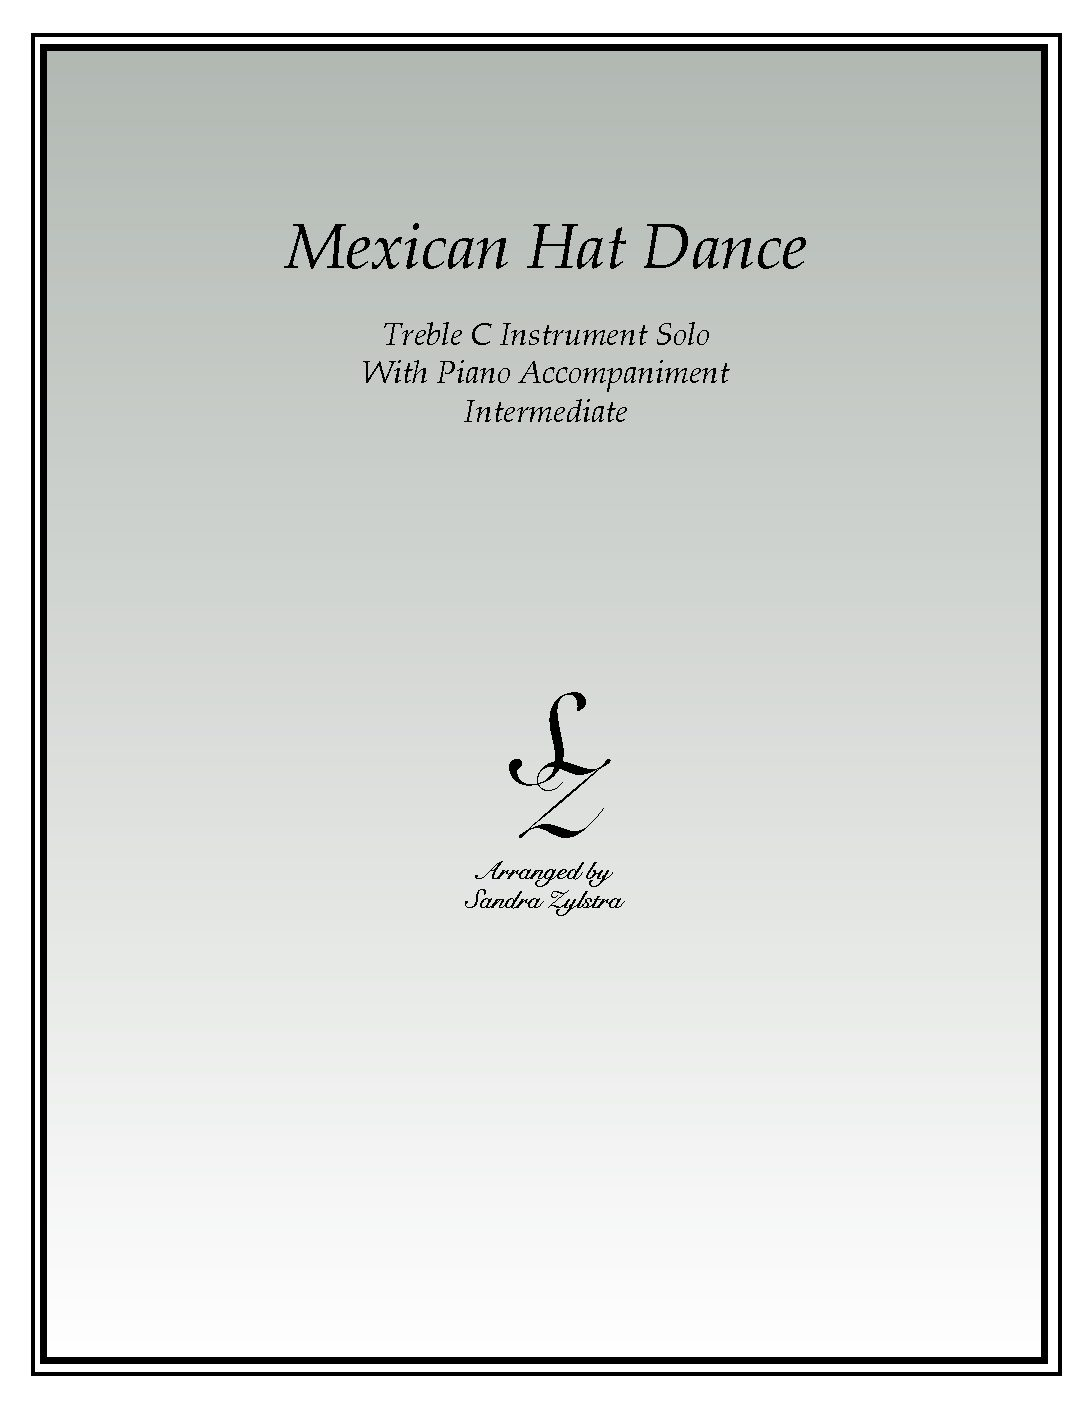 Mexican Hat Dance -Treble C Instrument Solo